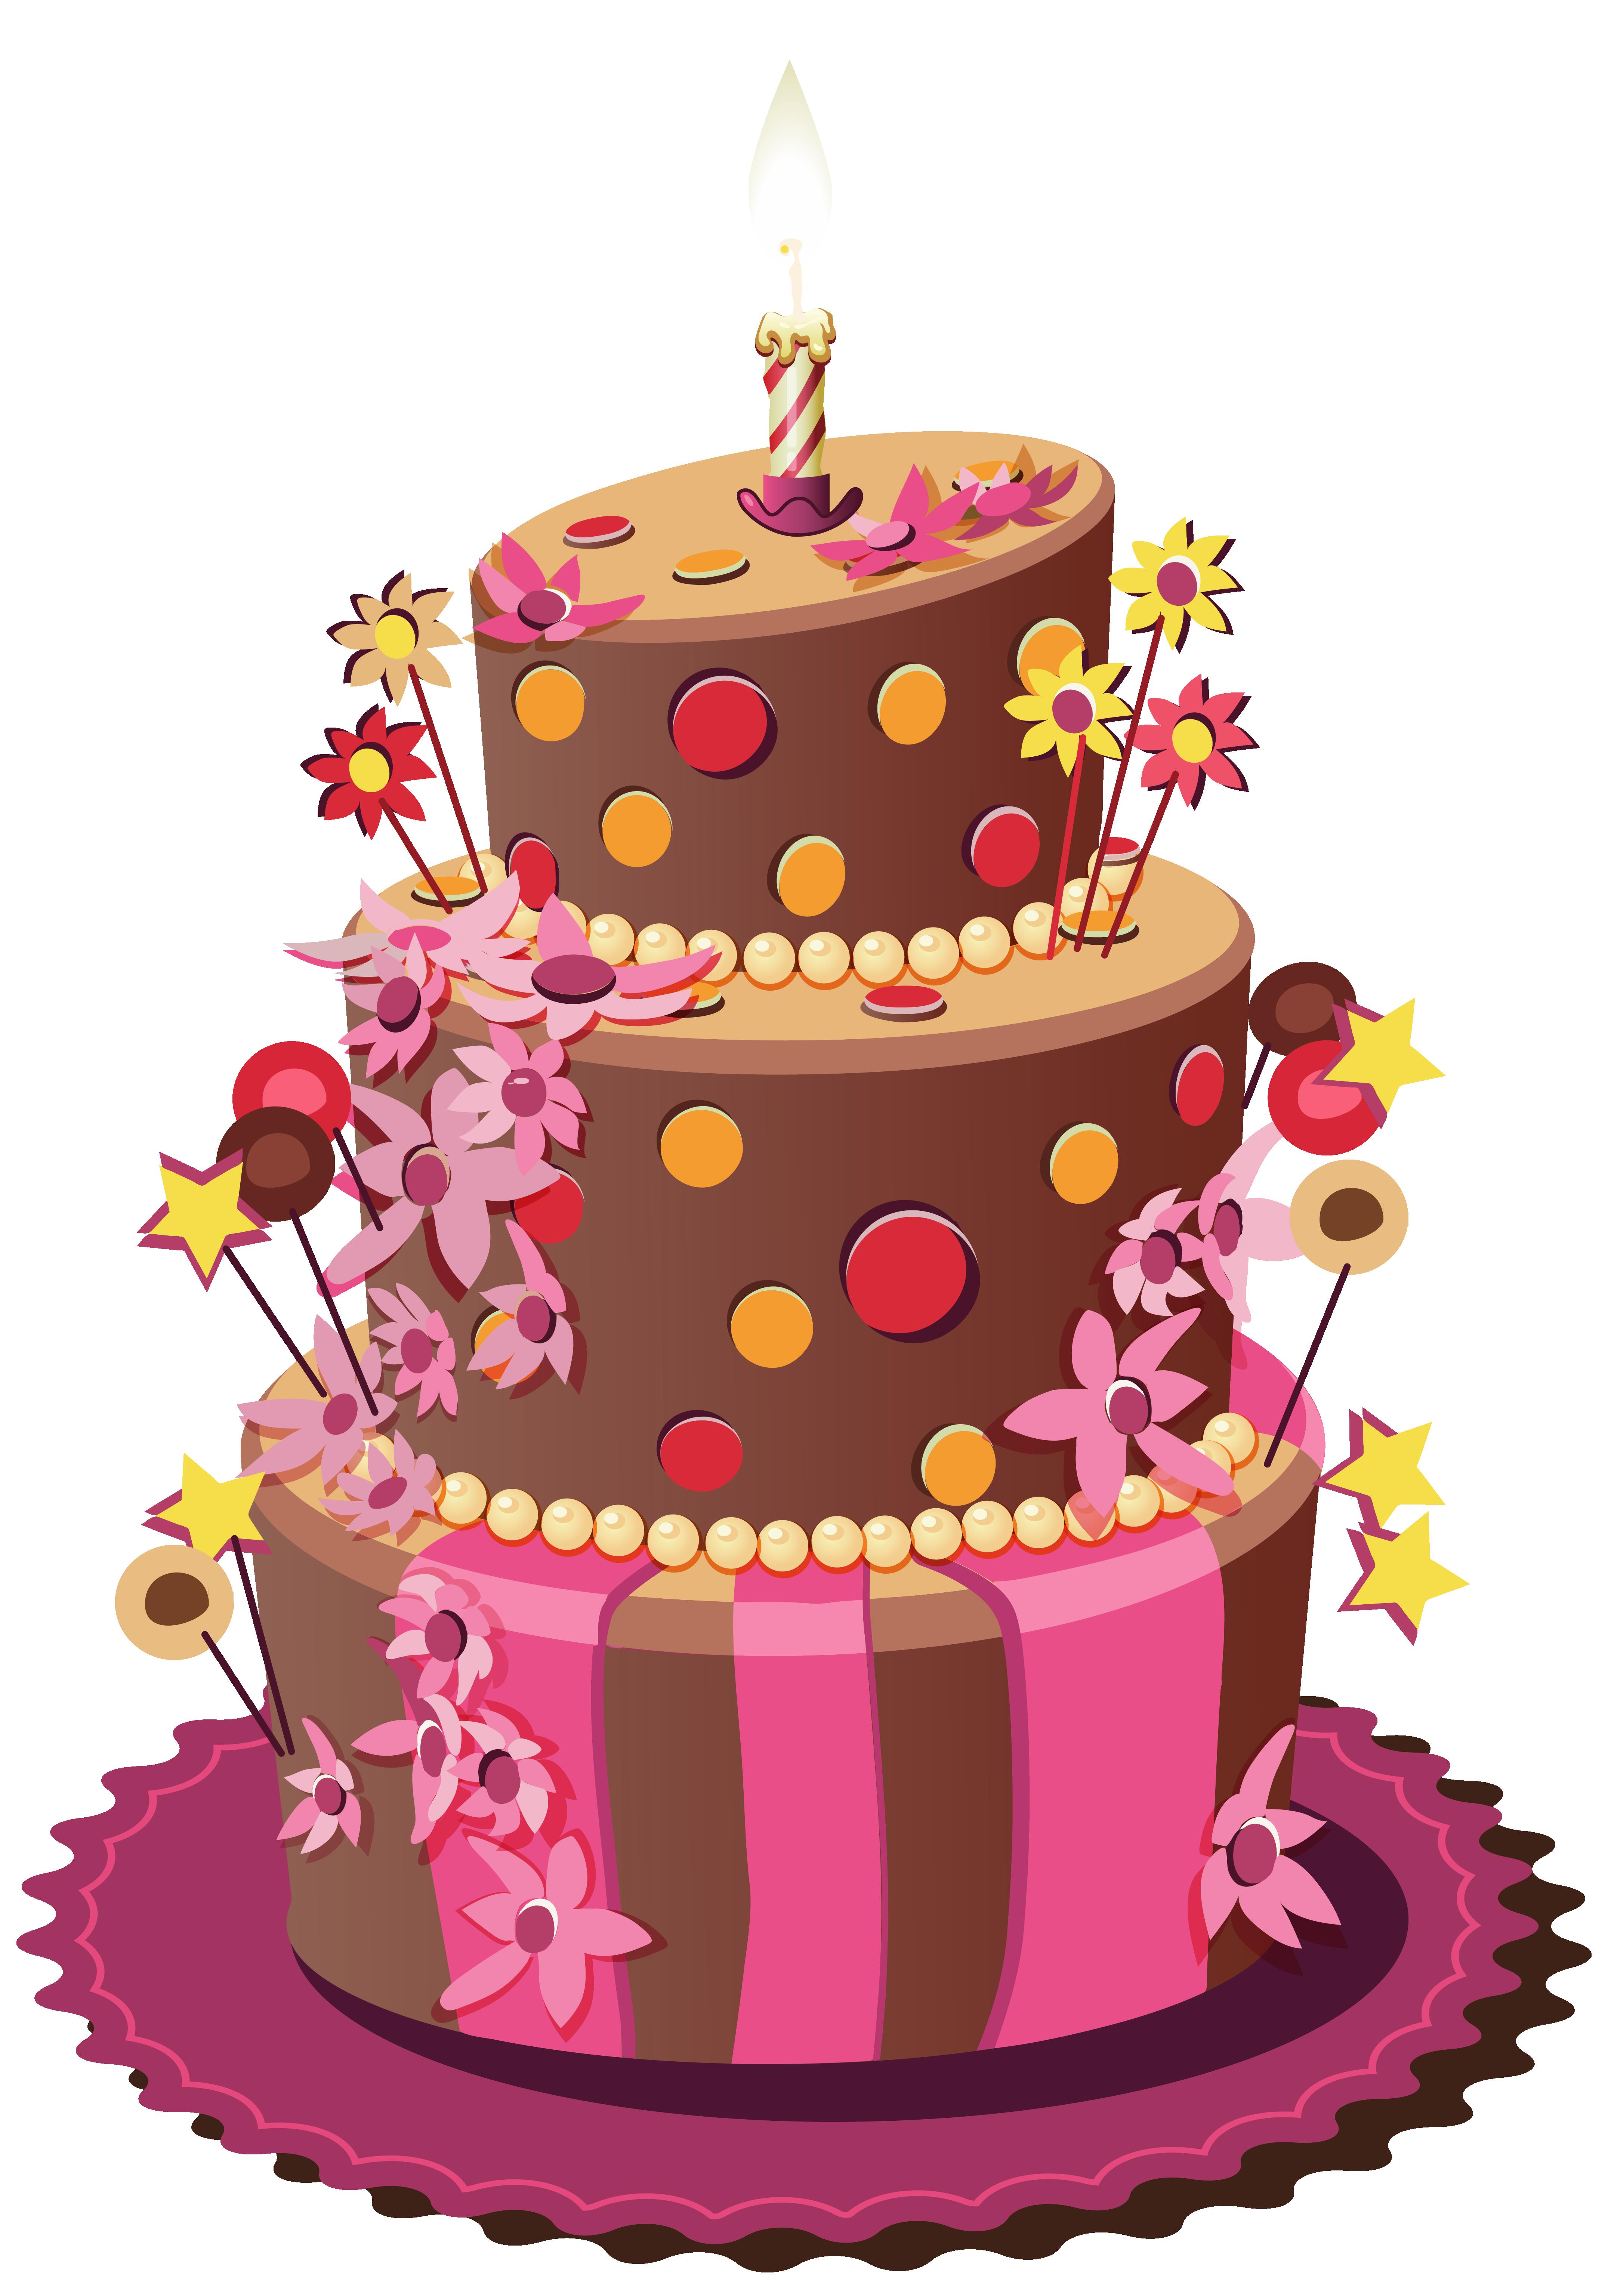 clipart images of birthday cakes ; fall-clipart-birthday-cake-20